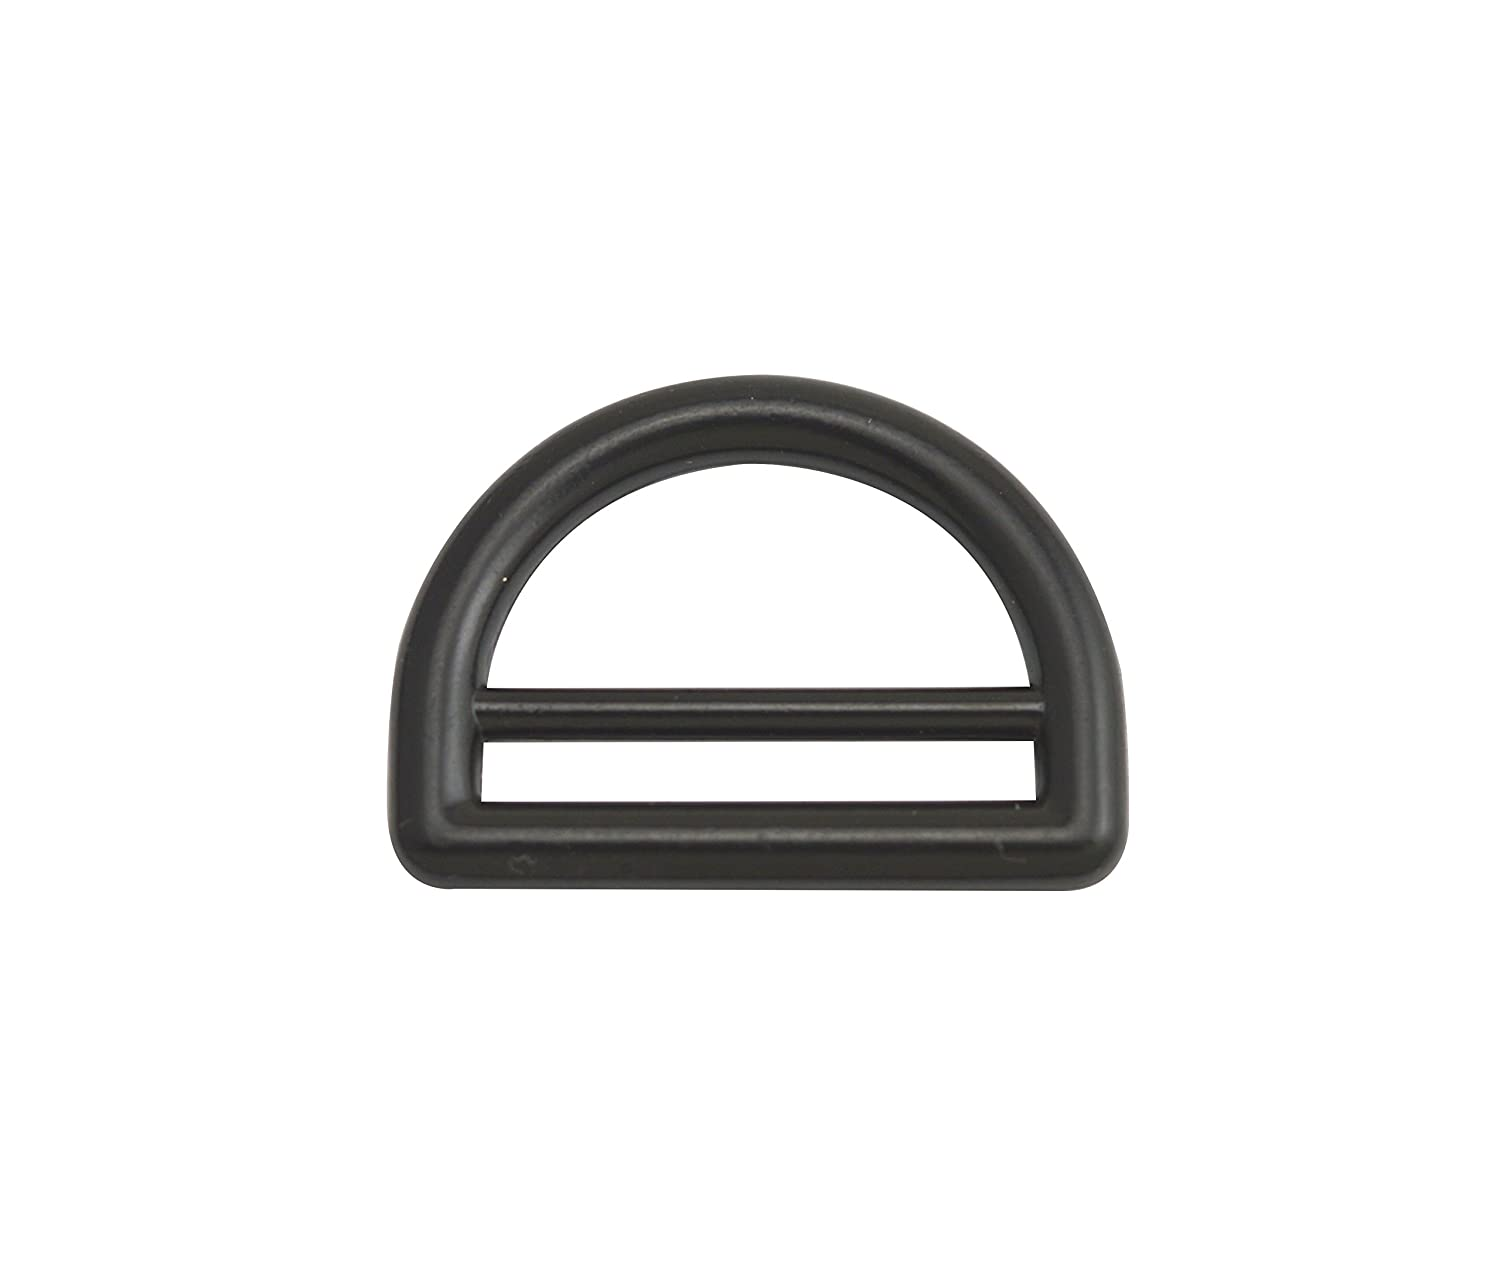 Wuuycoky 1 Inner Diameter Zinc Alloy Black Double Bar D Ring Buckles D-Ring for Webbing Strapping Pack of 10